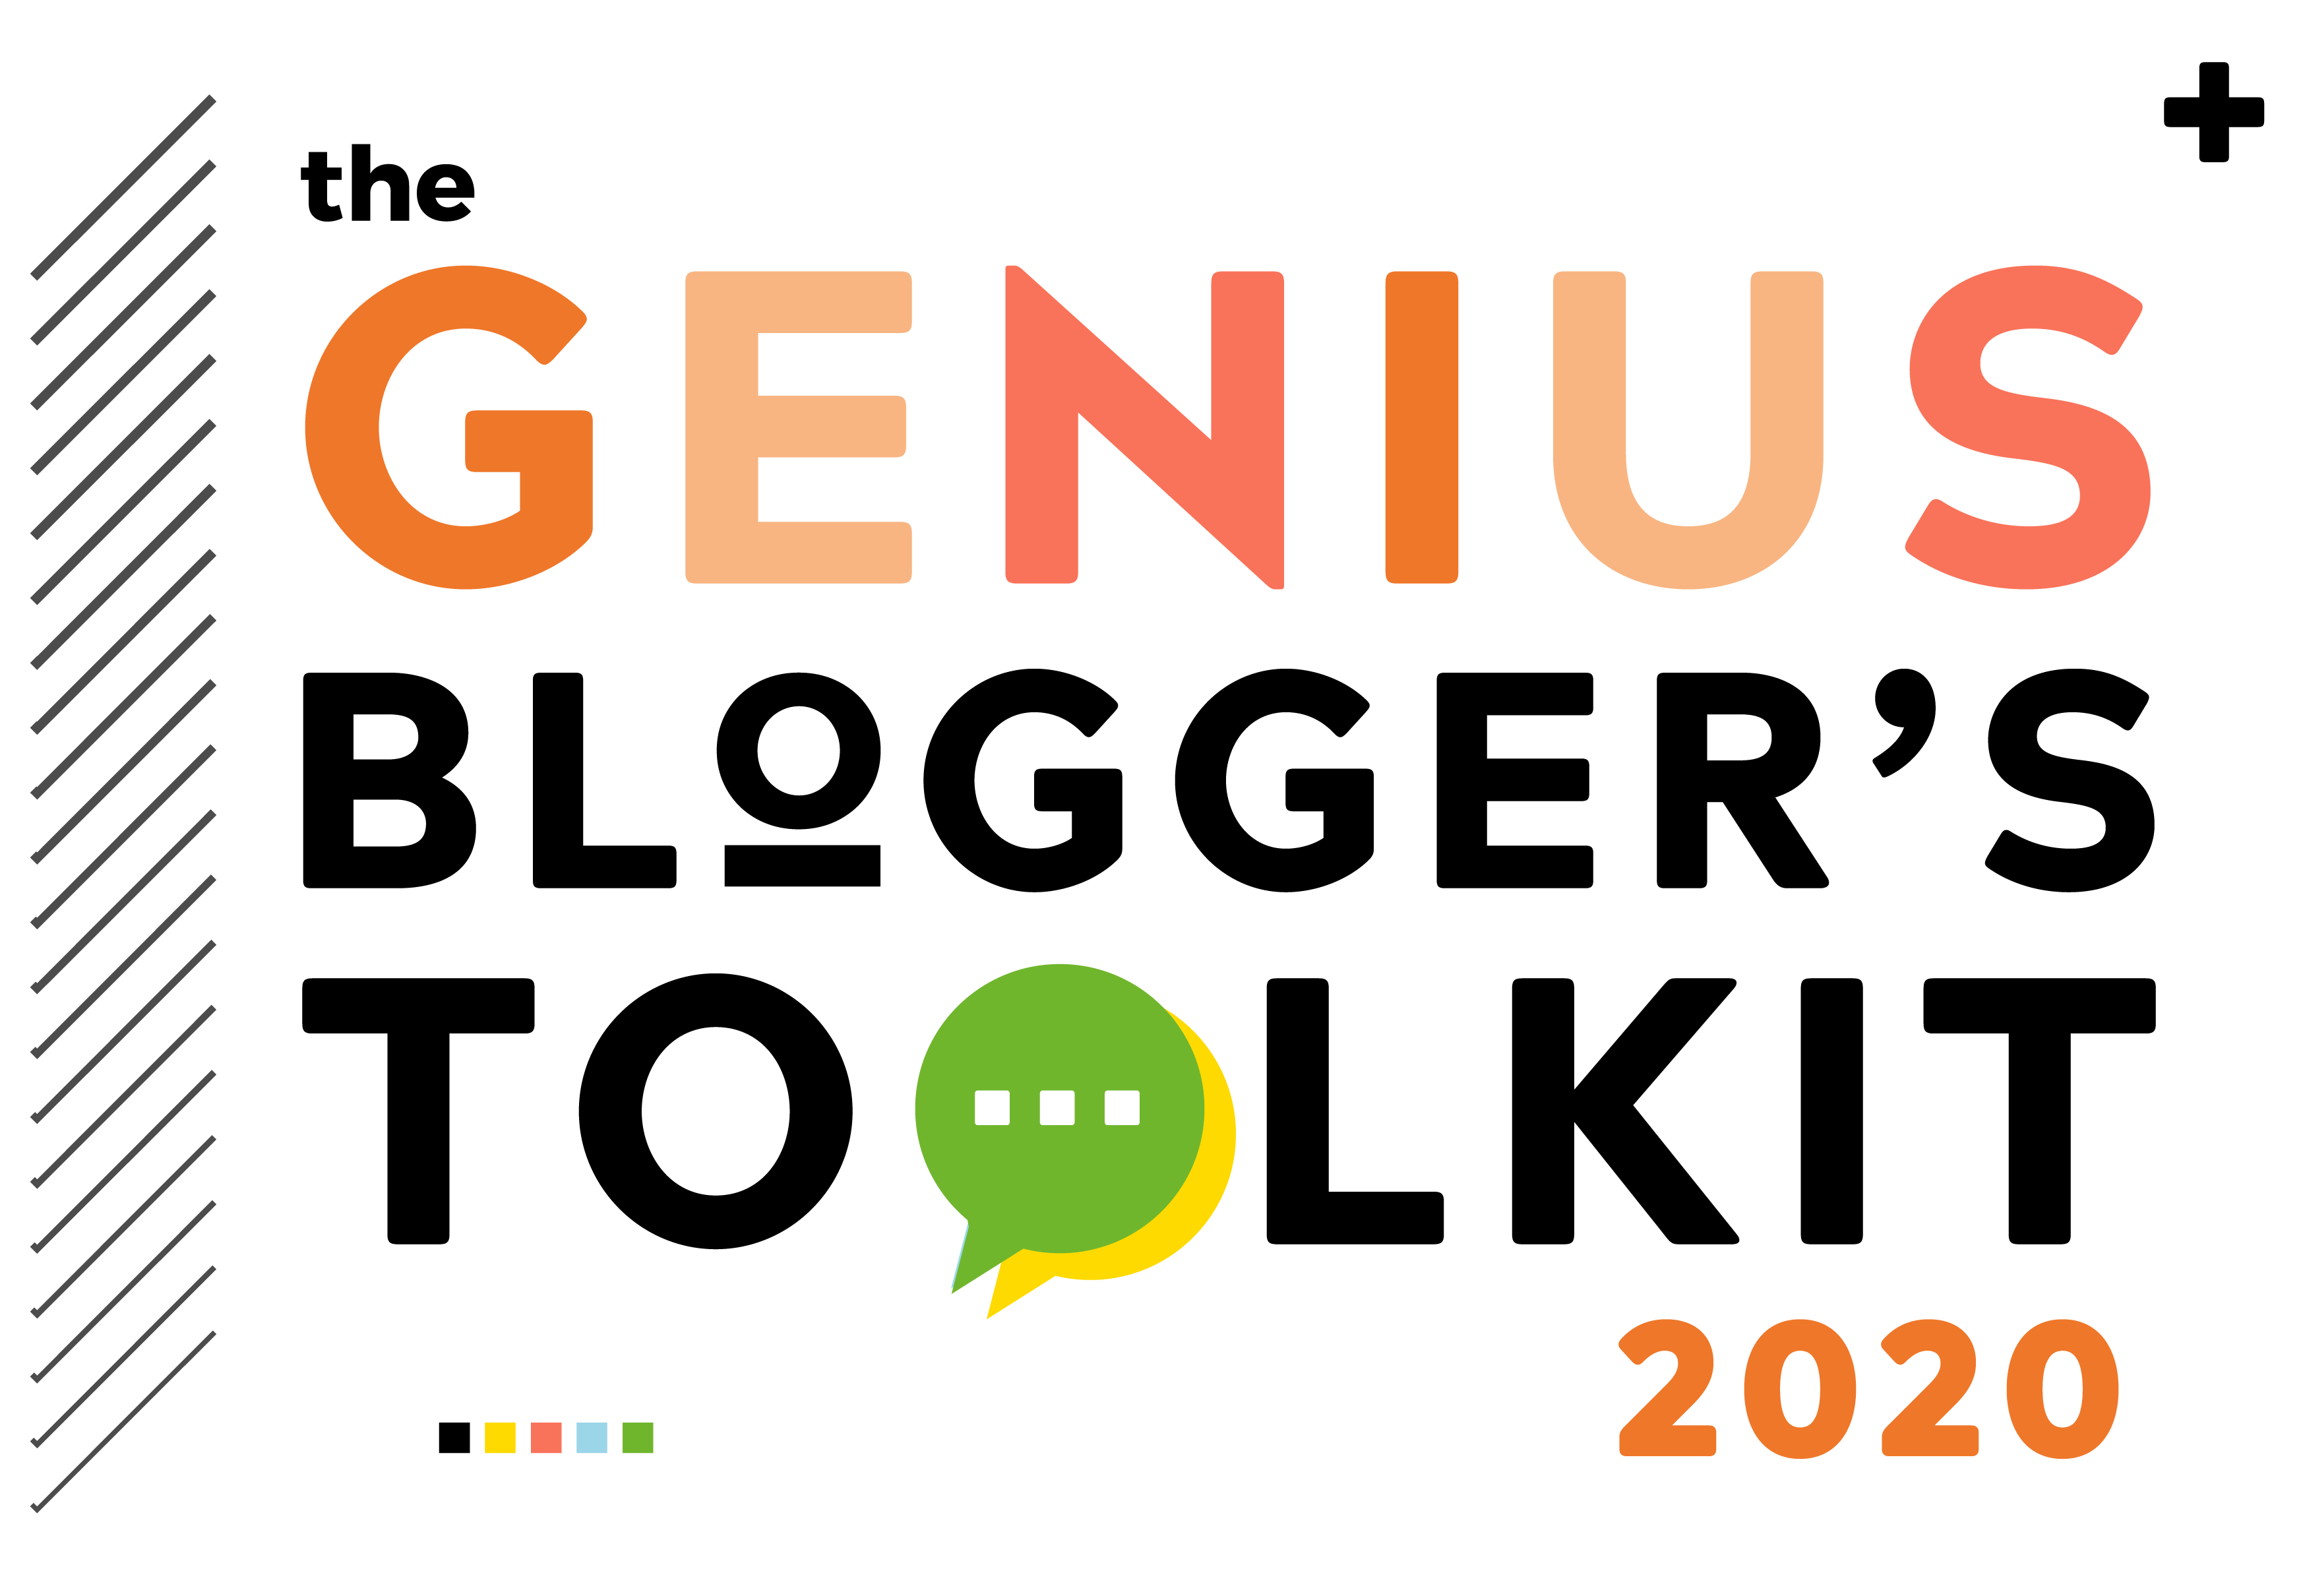 [GET] The Genius Bloggers Toolkit 2020 Free Download